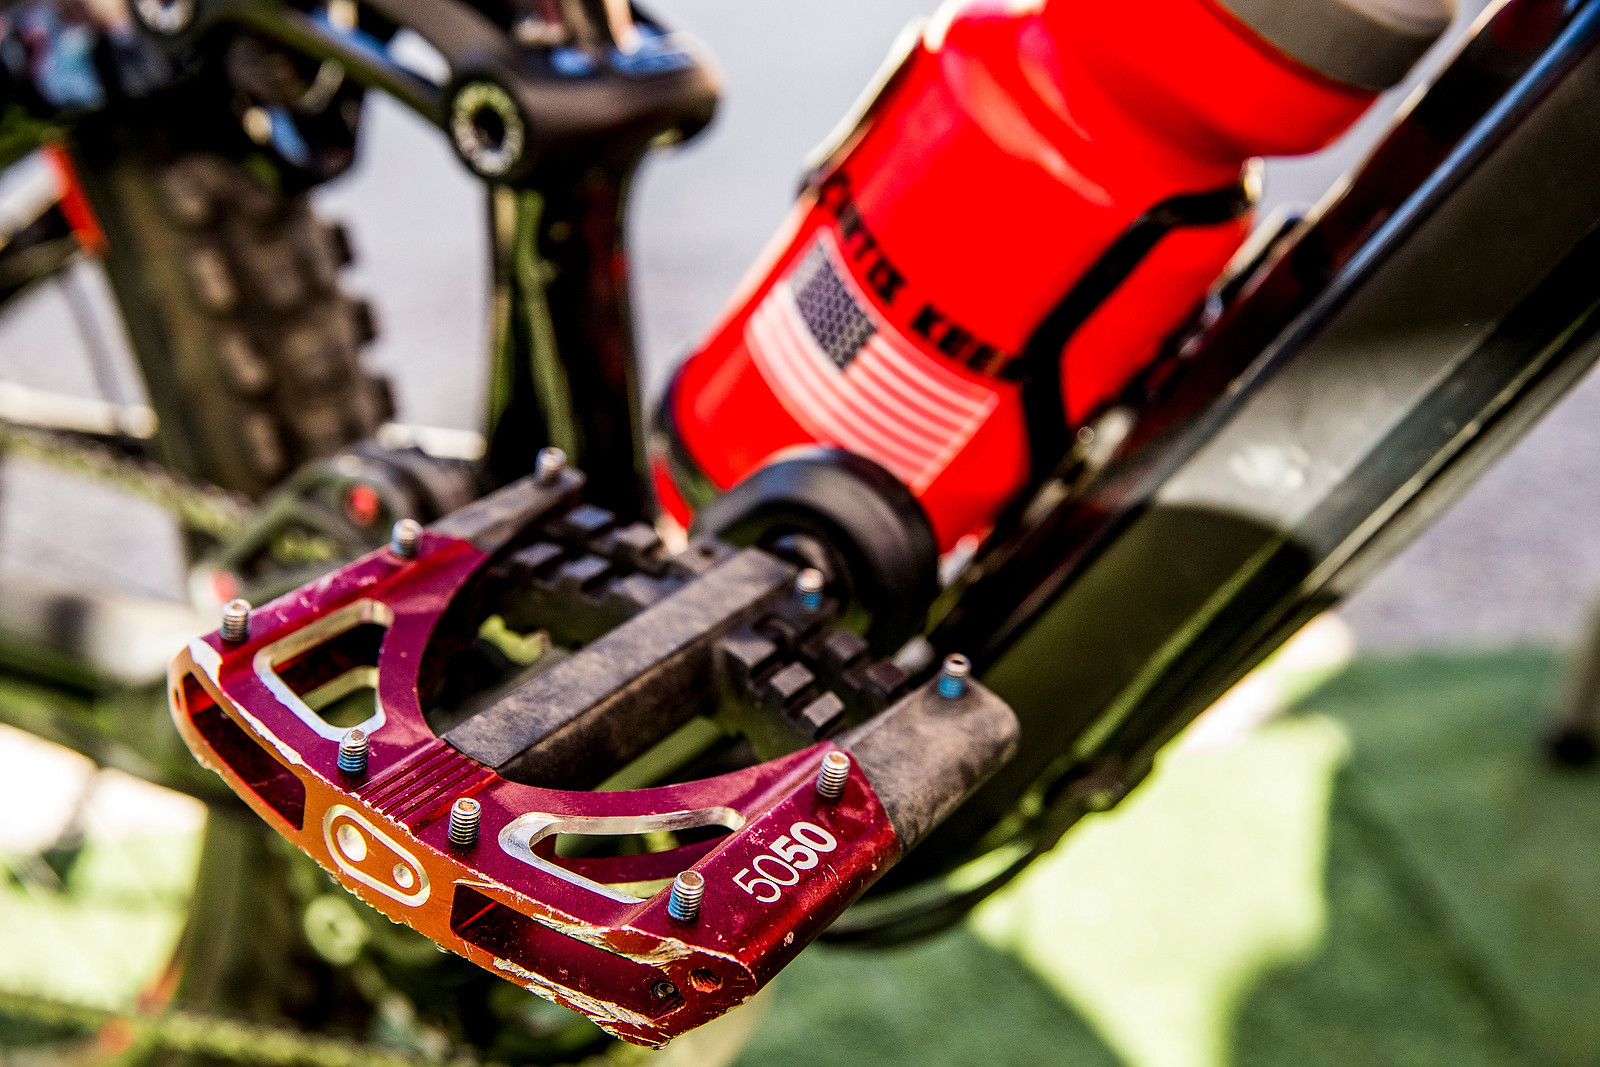 Curtis Keene Racing Flat Pedals - PIT BITS - Enduro World Series, Corral, Chile - Mountain Biking Pictures - Vital MTB